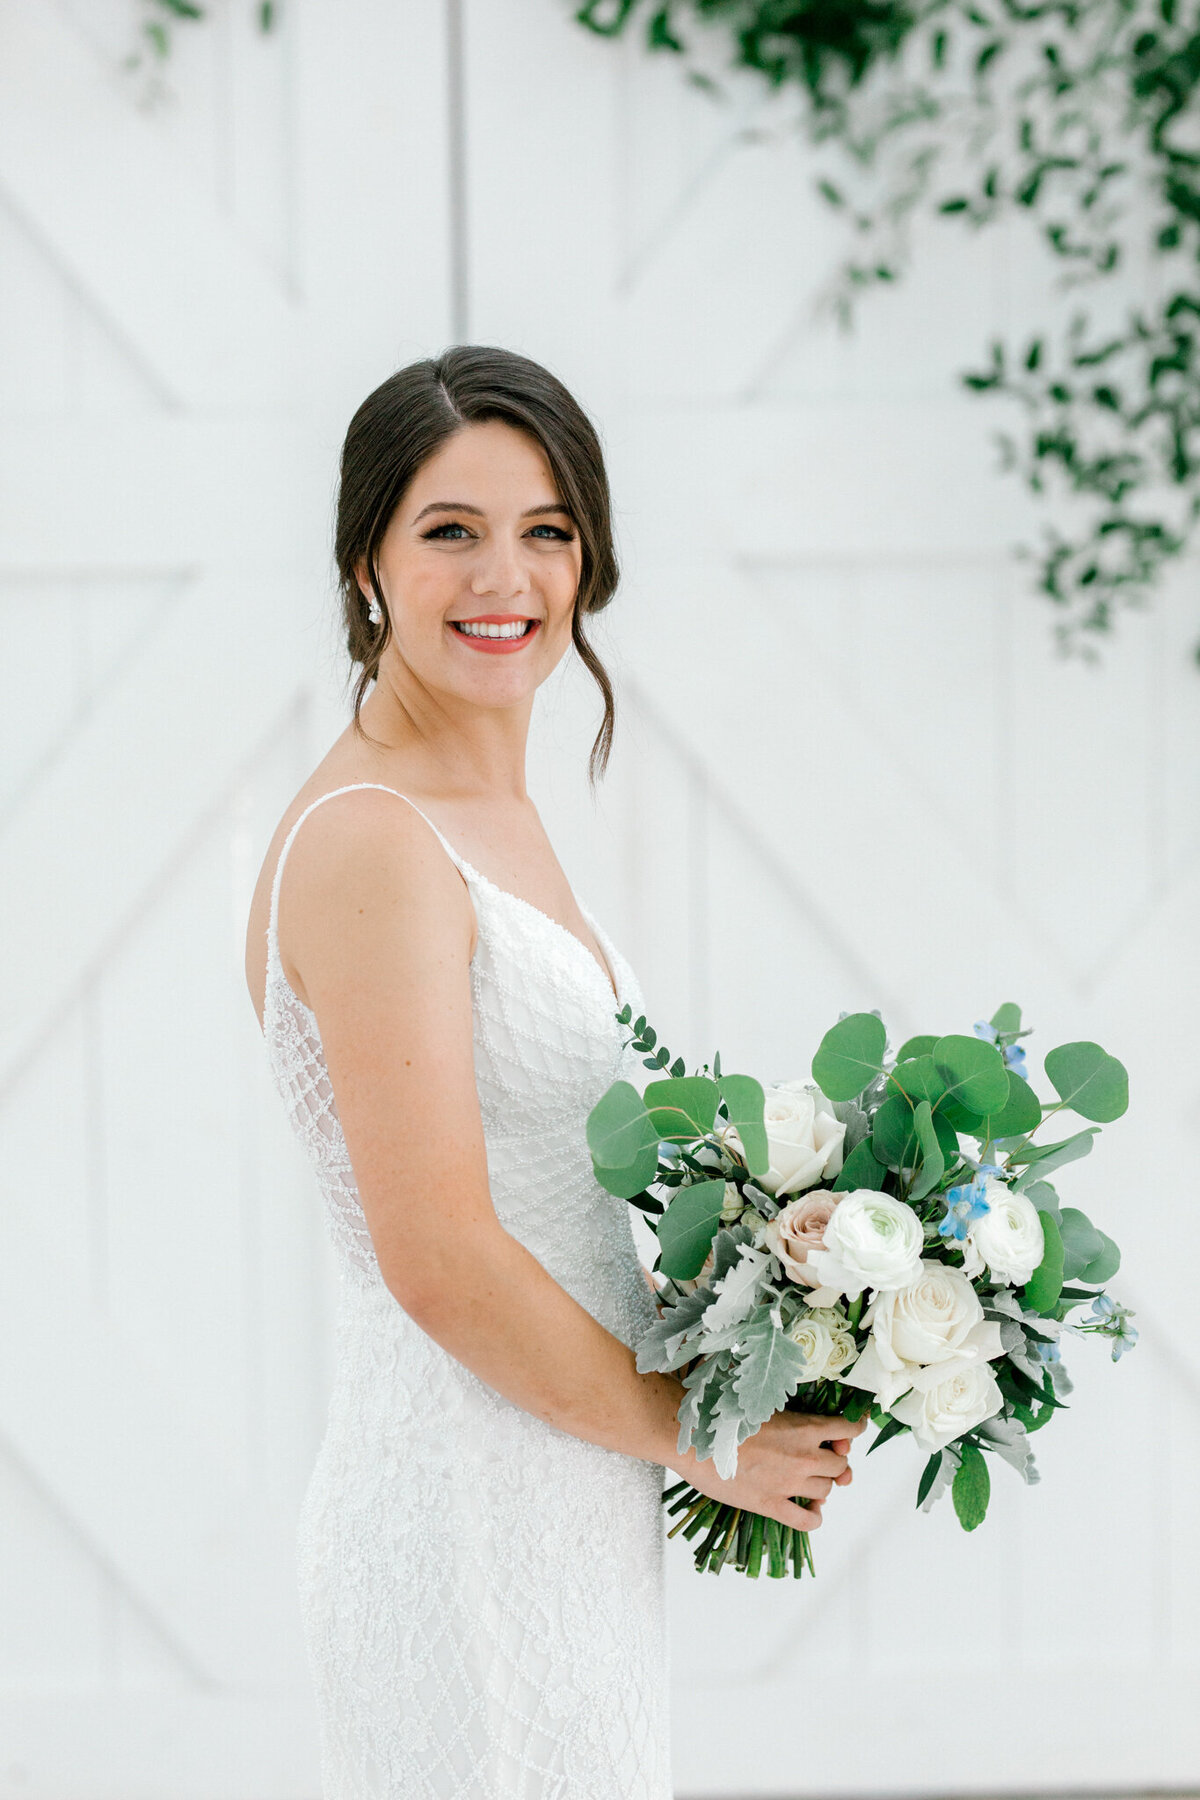 Anna & Billy's Wedding at The Nest at Ruth Farms | Dallas Wedding Photographer | Sami Kathryn Photography-132